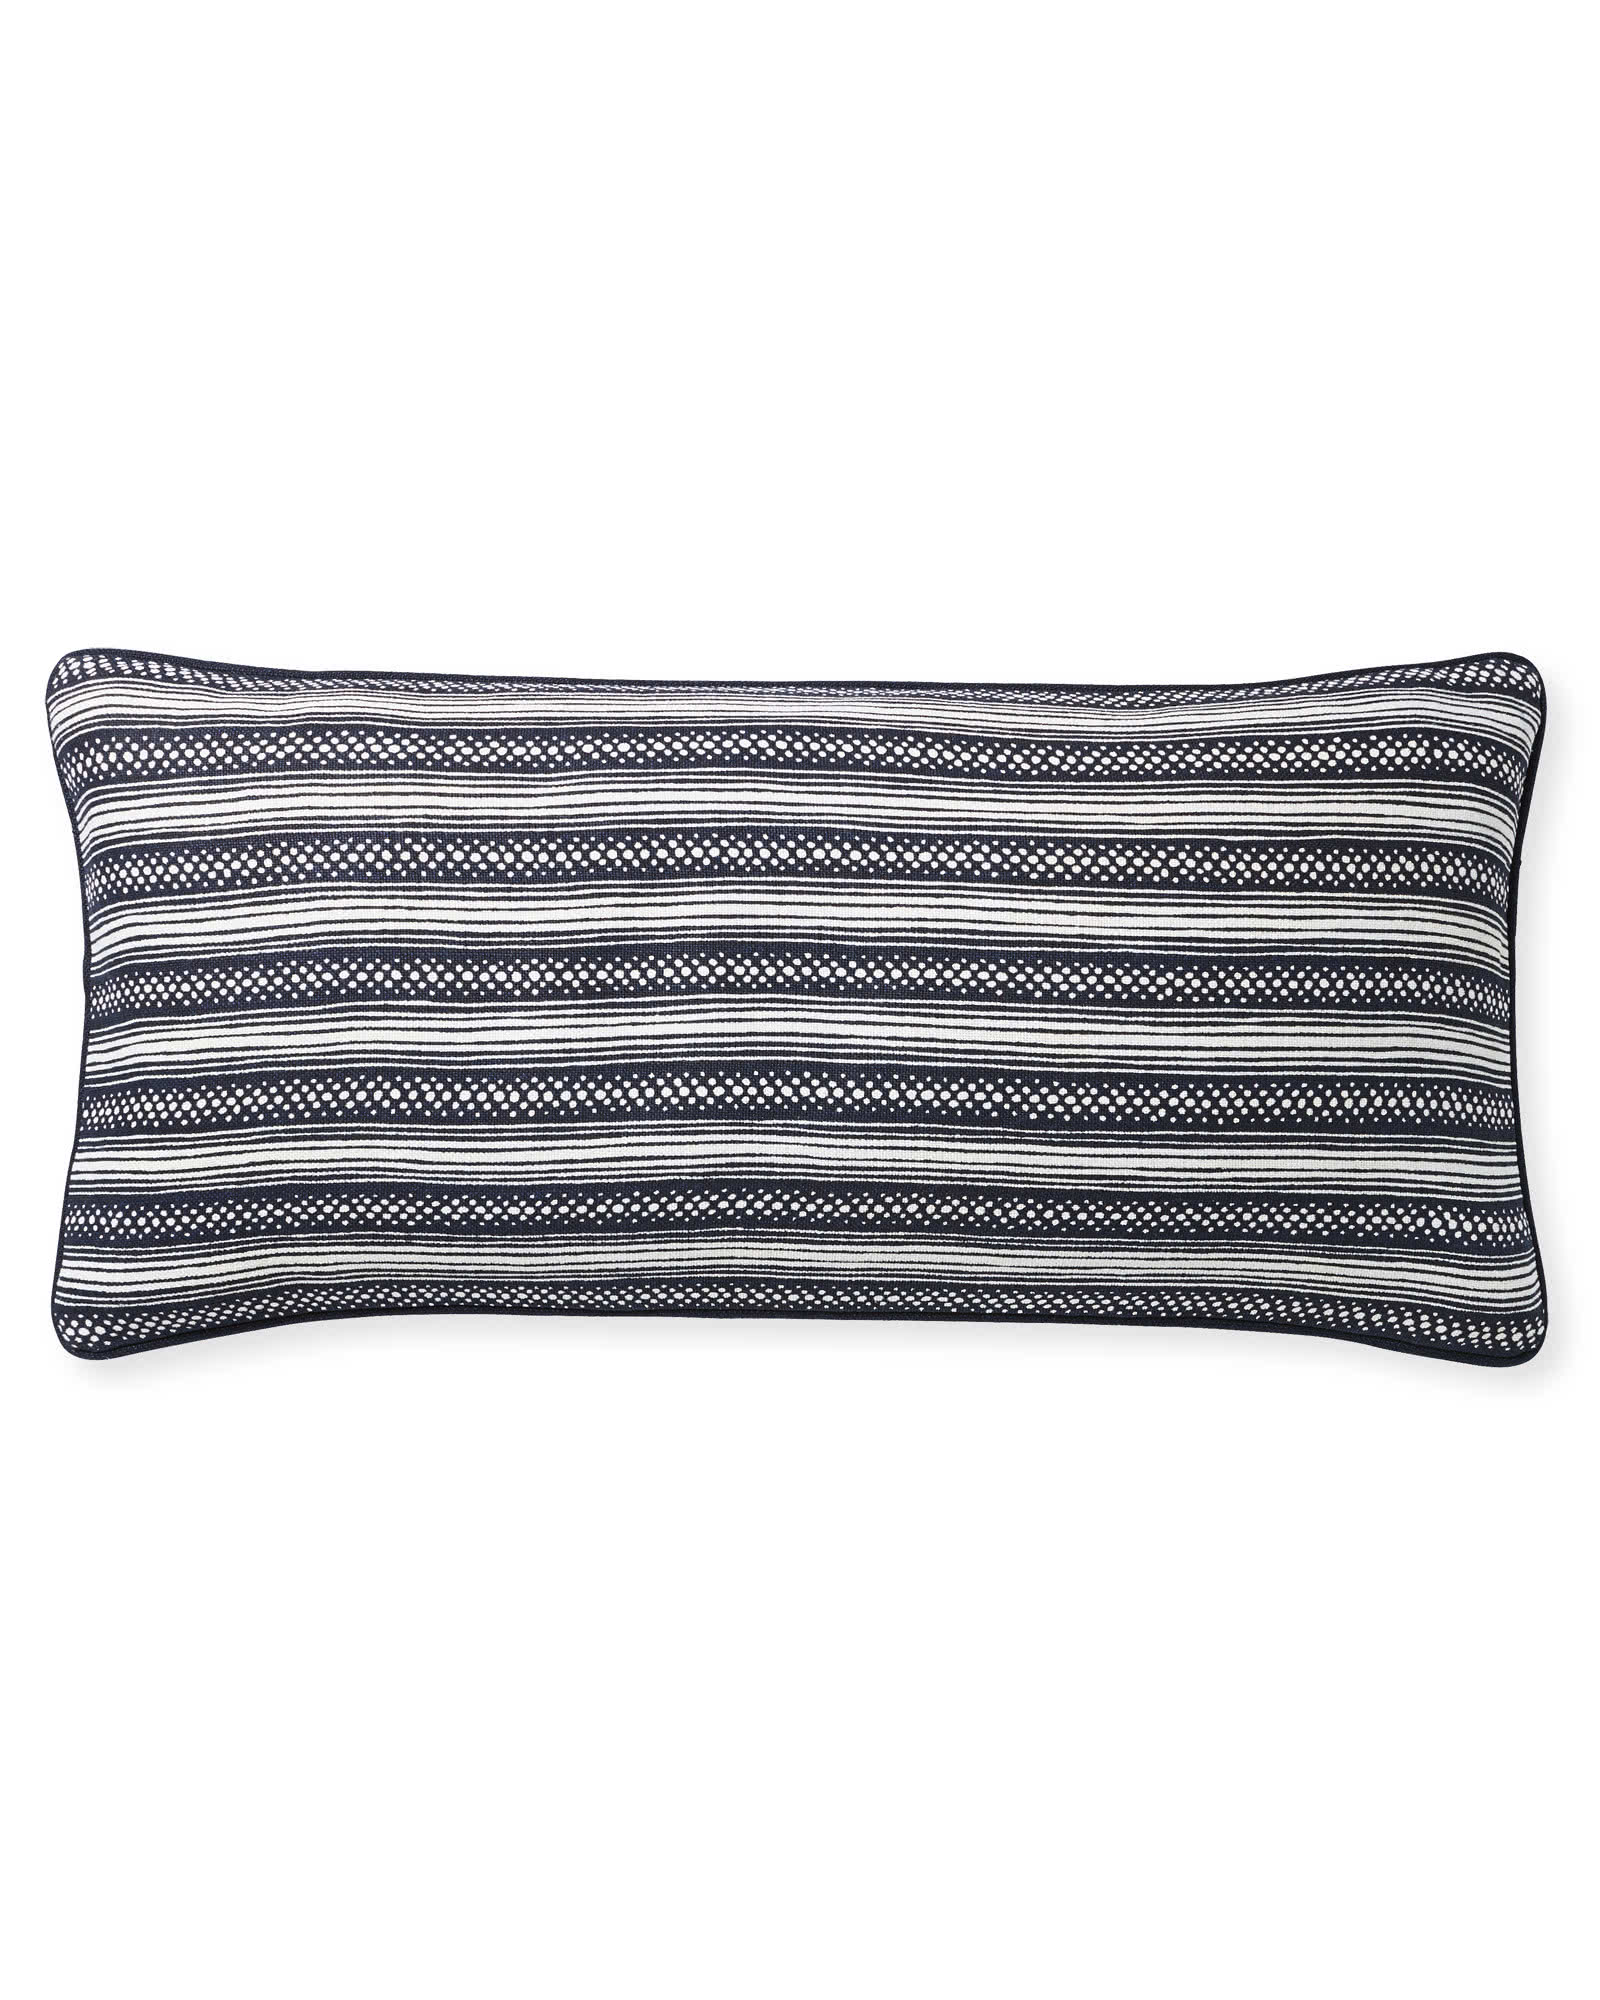 Stowe Pillow Cover, White/Navy